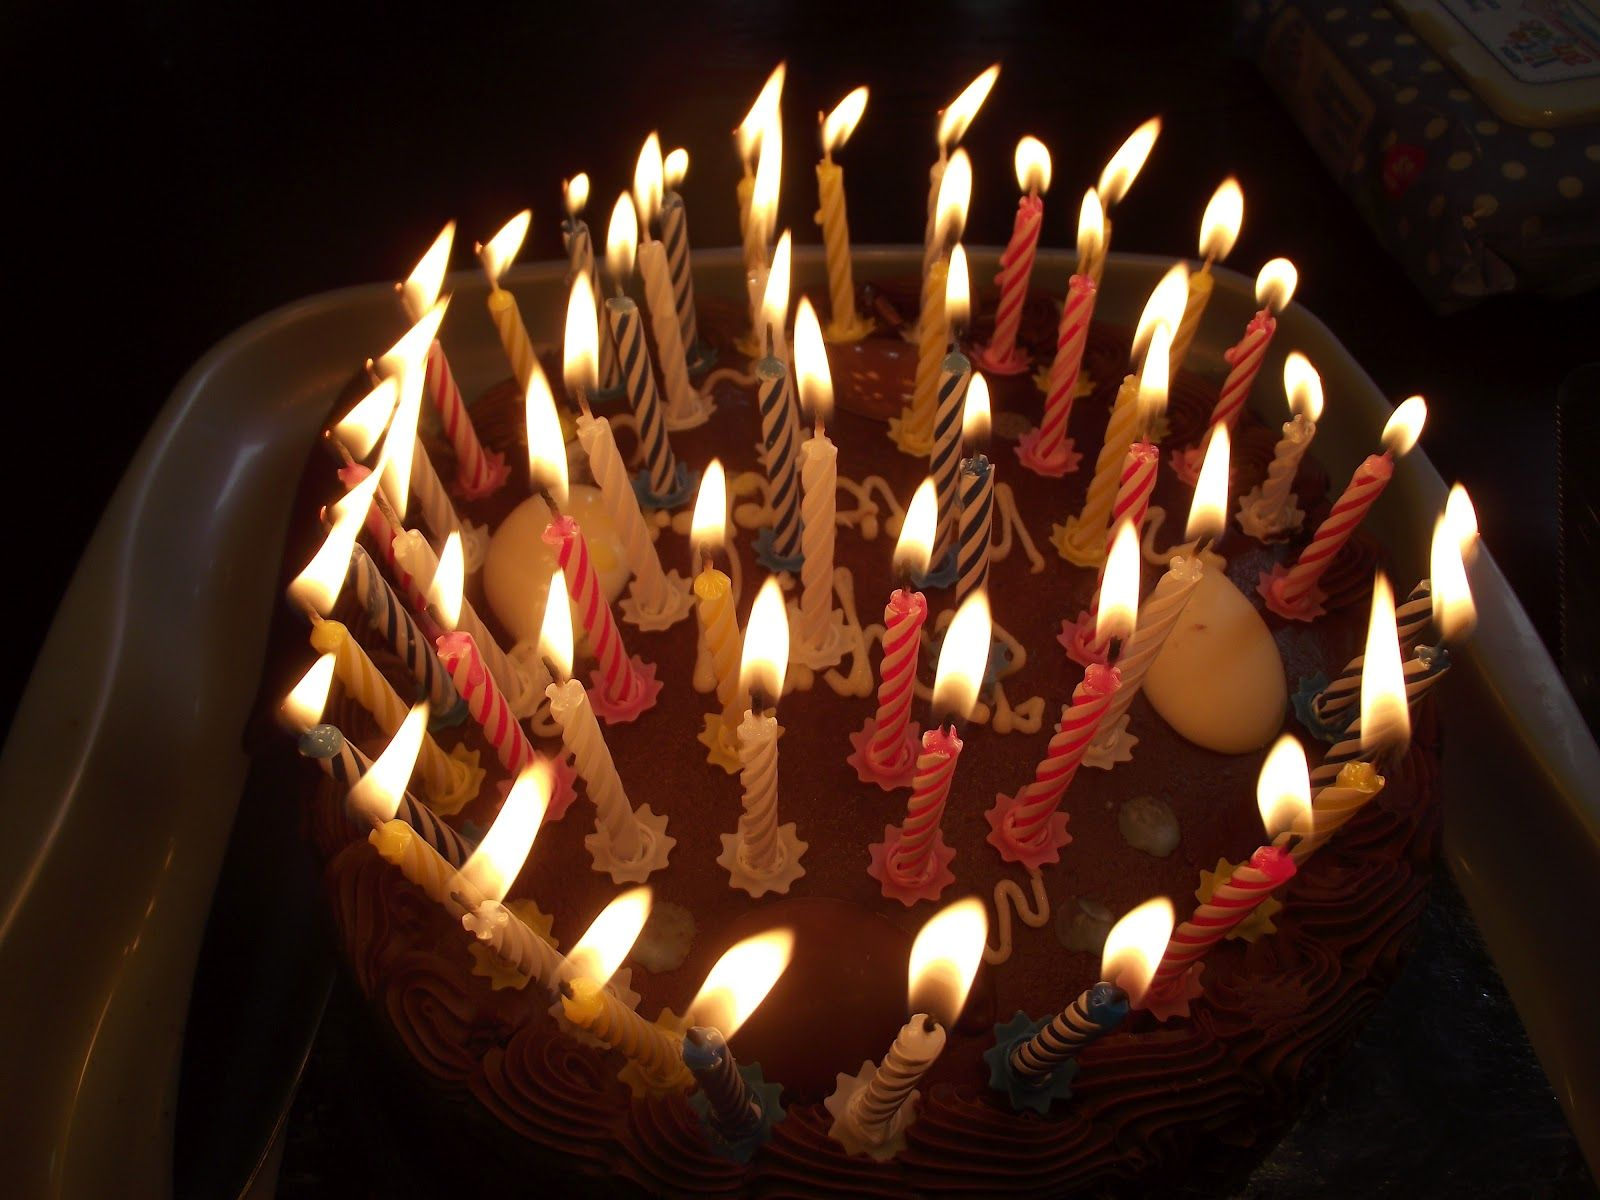 A Cake With 25 Candles Just For Blanche Food And Drink